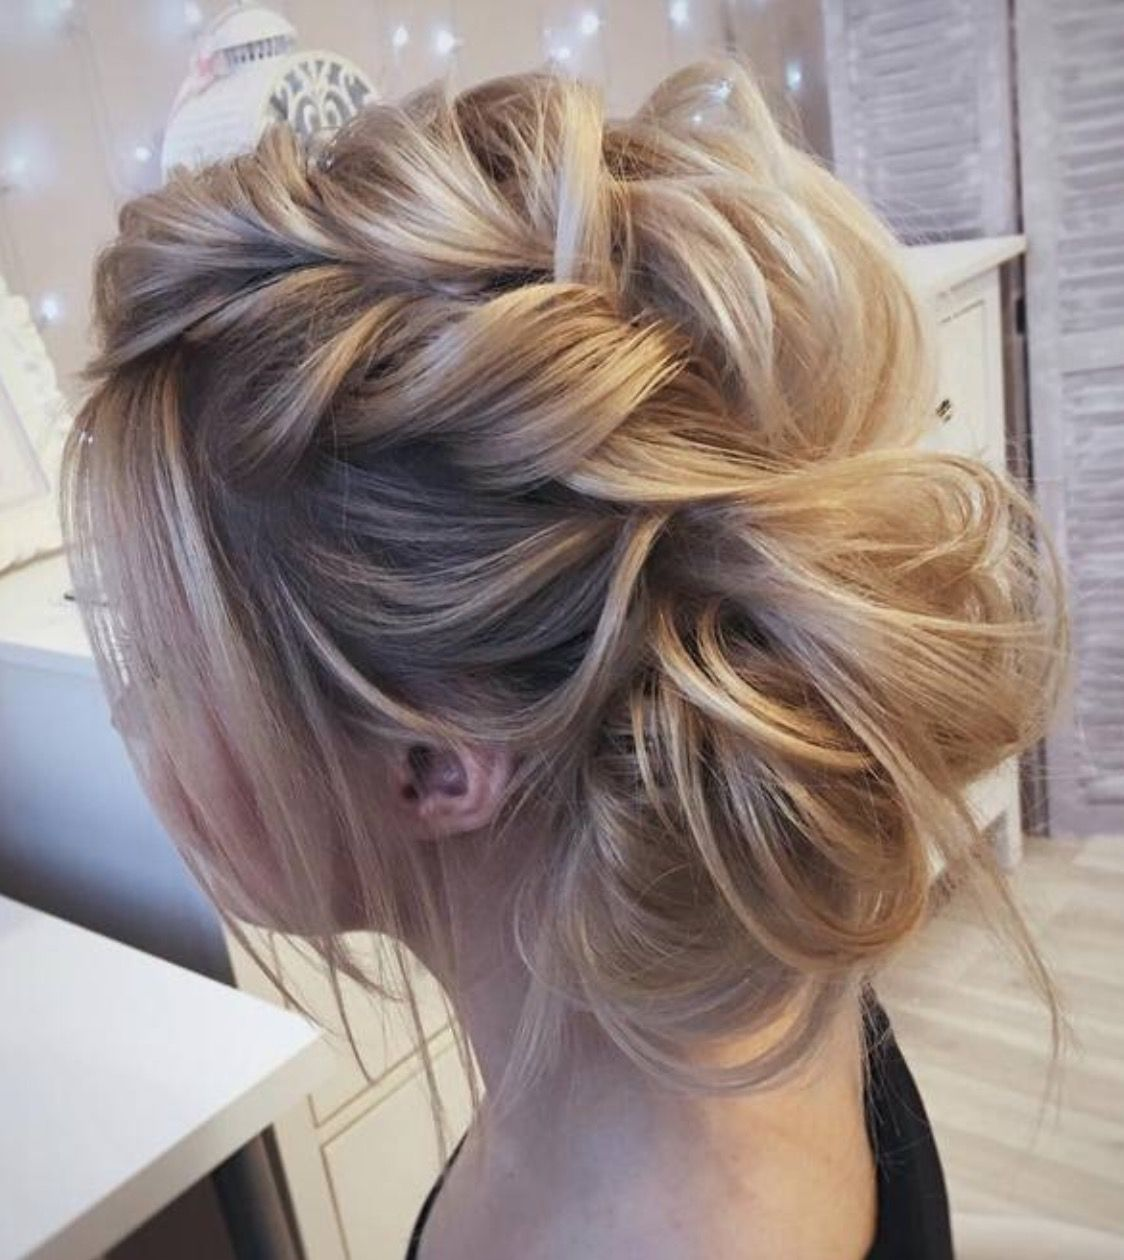 Very Loose Fishtail Braid Pulled Apart Into A Bun With Messy Wispy Pieces Around Medium Length Hair Styles Medium Hair Styles Wedding Hairstyles For Long Hair